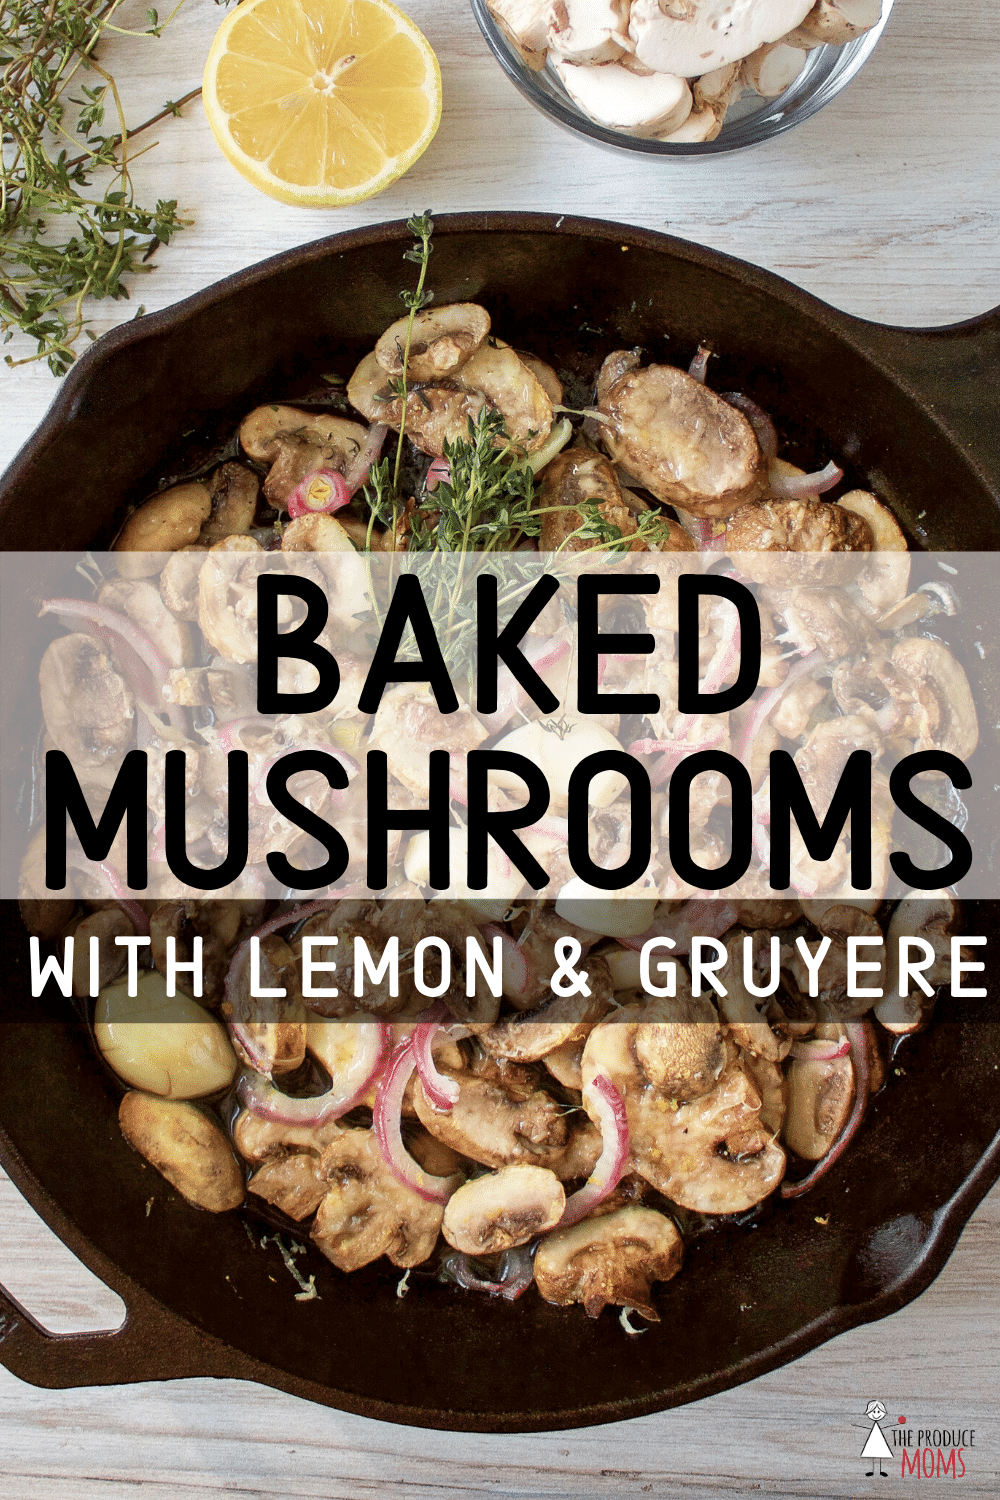 Baked Mushrooms with Lemon and Gruyere